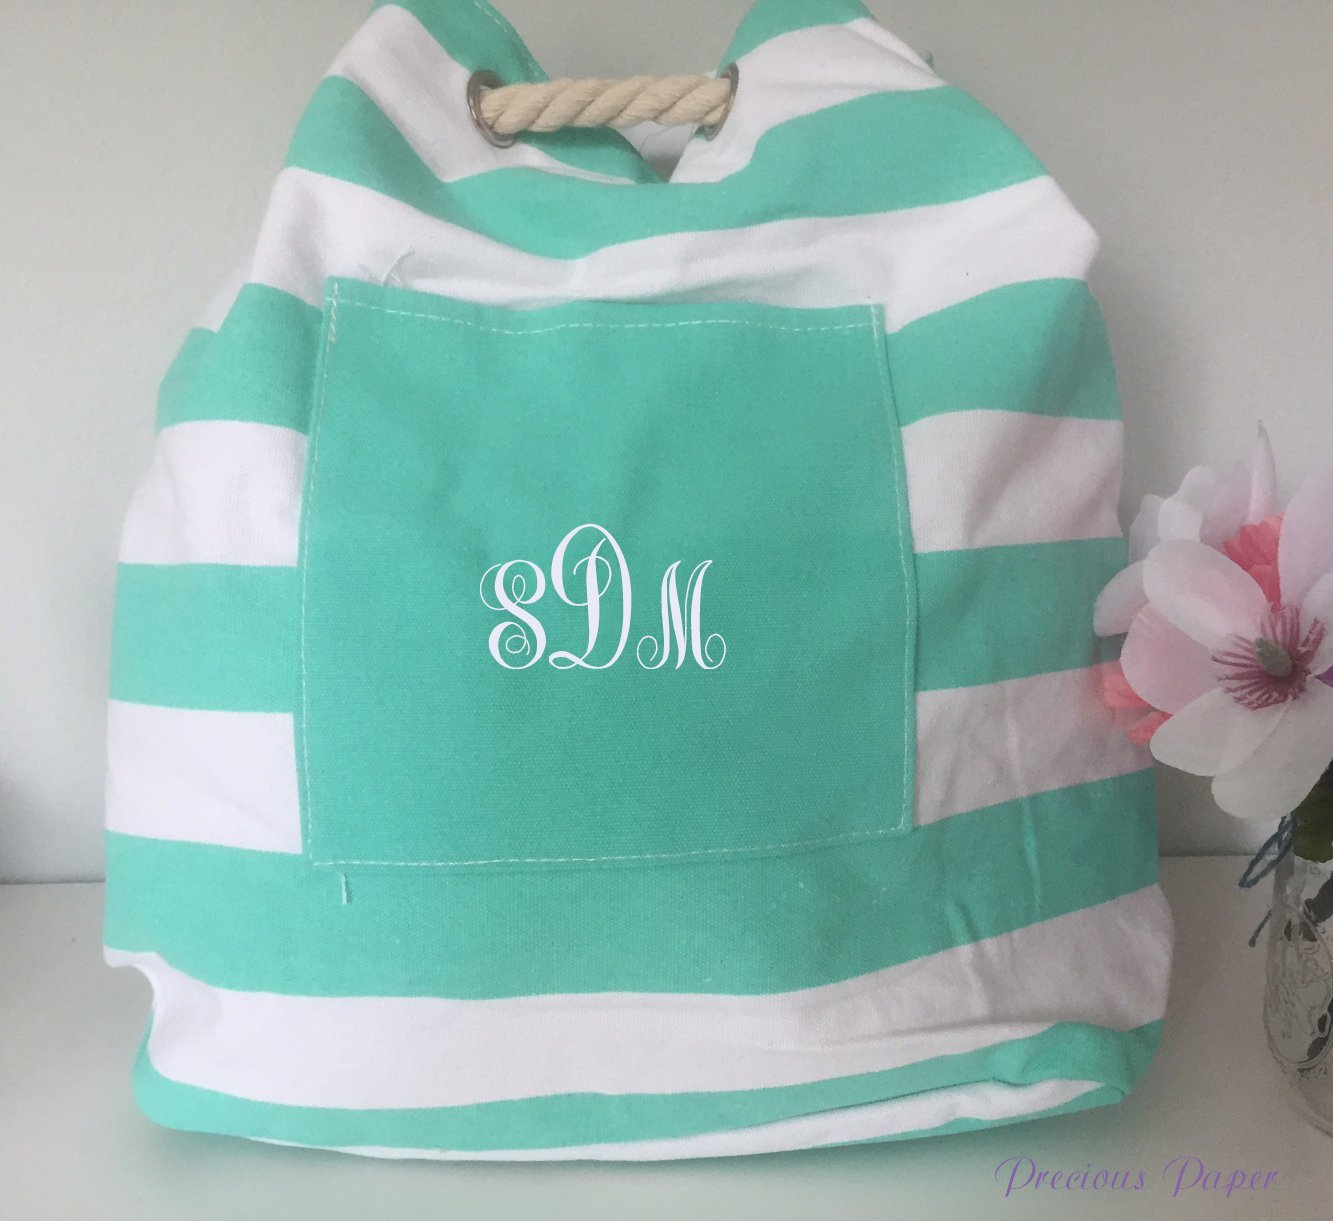 Personalized monogrammed teal canvas striped bag with rope handle, striped shoulder bag, beach bag, backpack